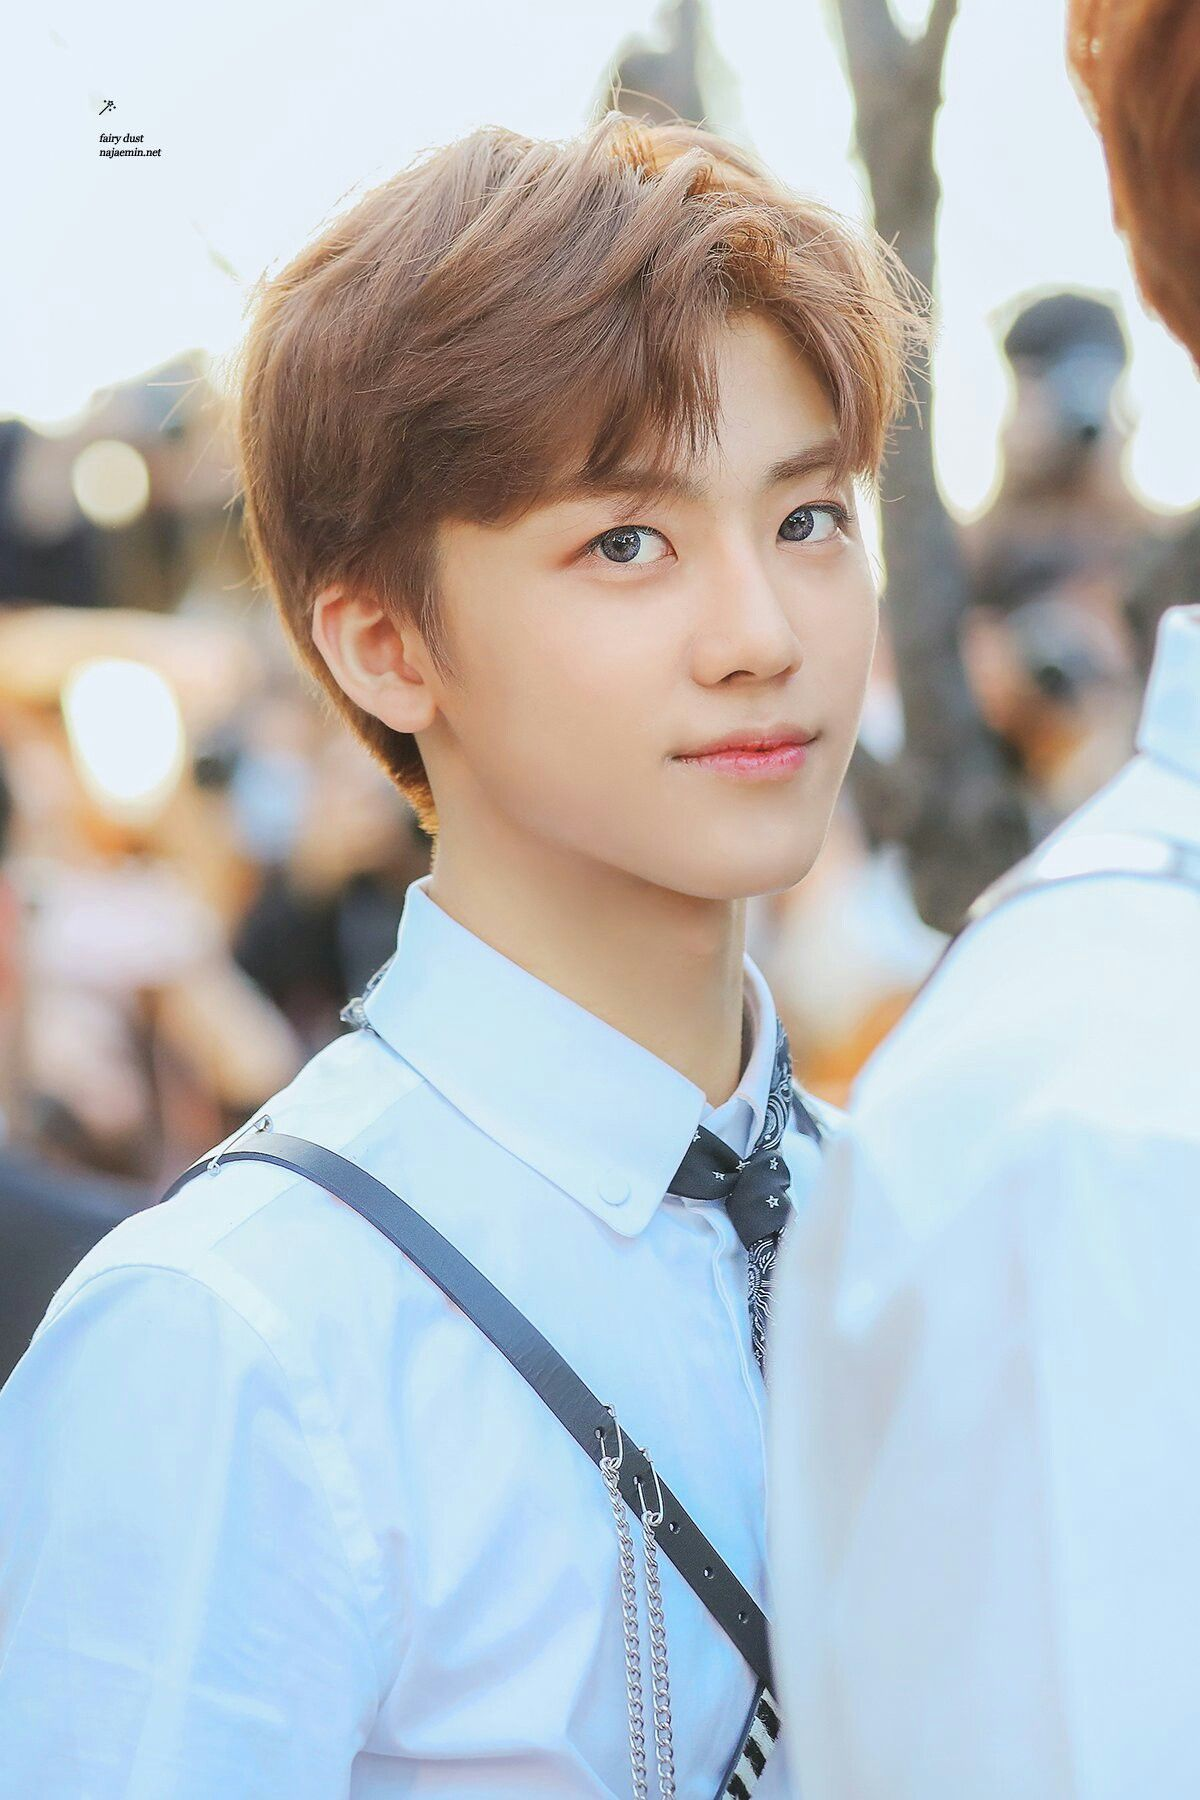 #Jaemin #NCT Cre: Fairy dust | NCT | NCT, Nct 127 e Nct dream